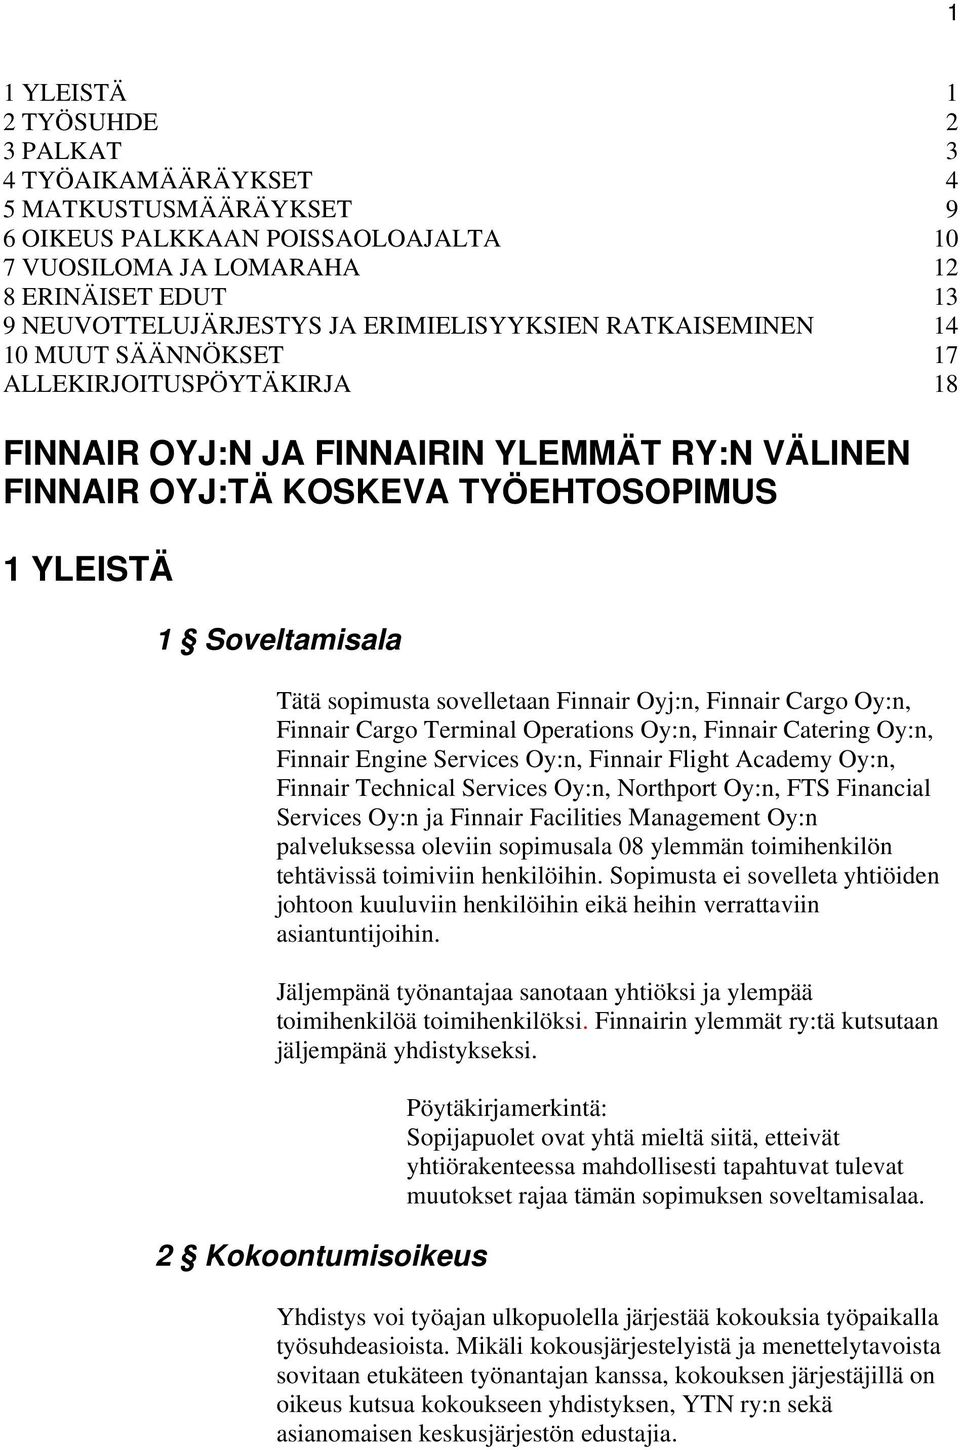 sopimusta sovelletaan Finnair Oyj:n, Finnair Cargo Oy:n, Finnair Cargo Terminal Operations Oy:n, Finnair Catering Oy:n, Finnair Engine Services Oy:n, Finnair Flight Academy Oy:n, Finnair Technical